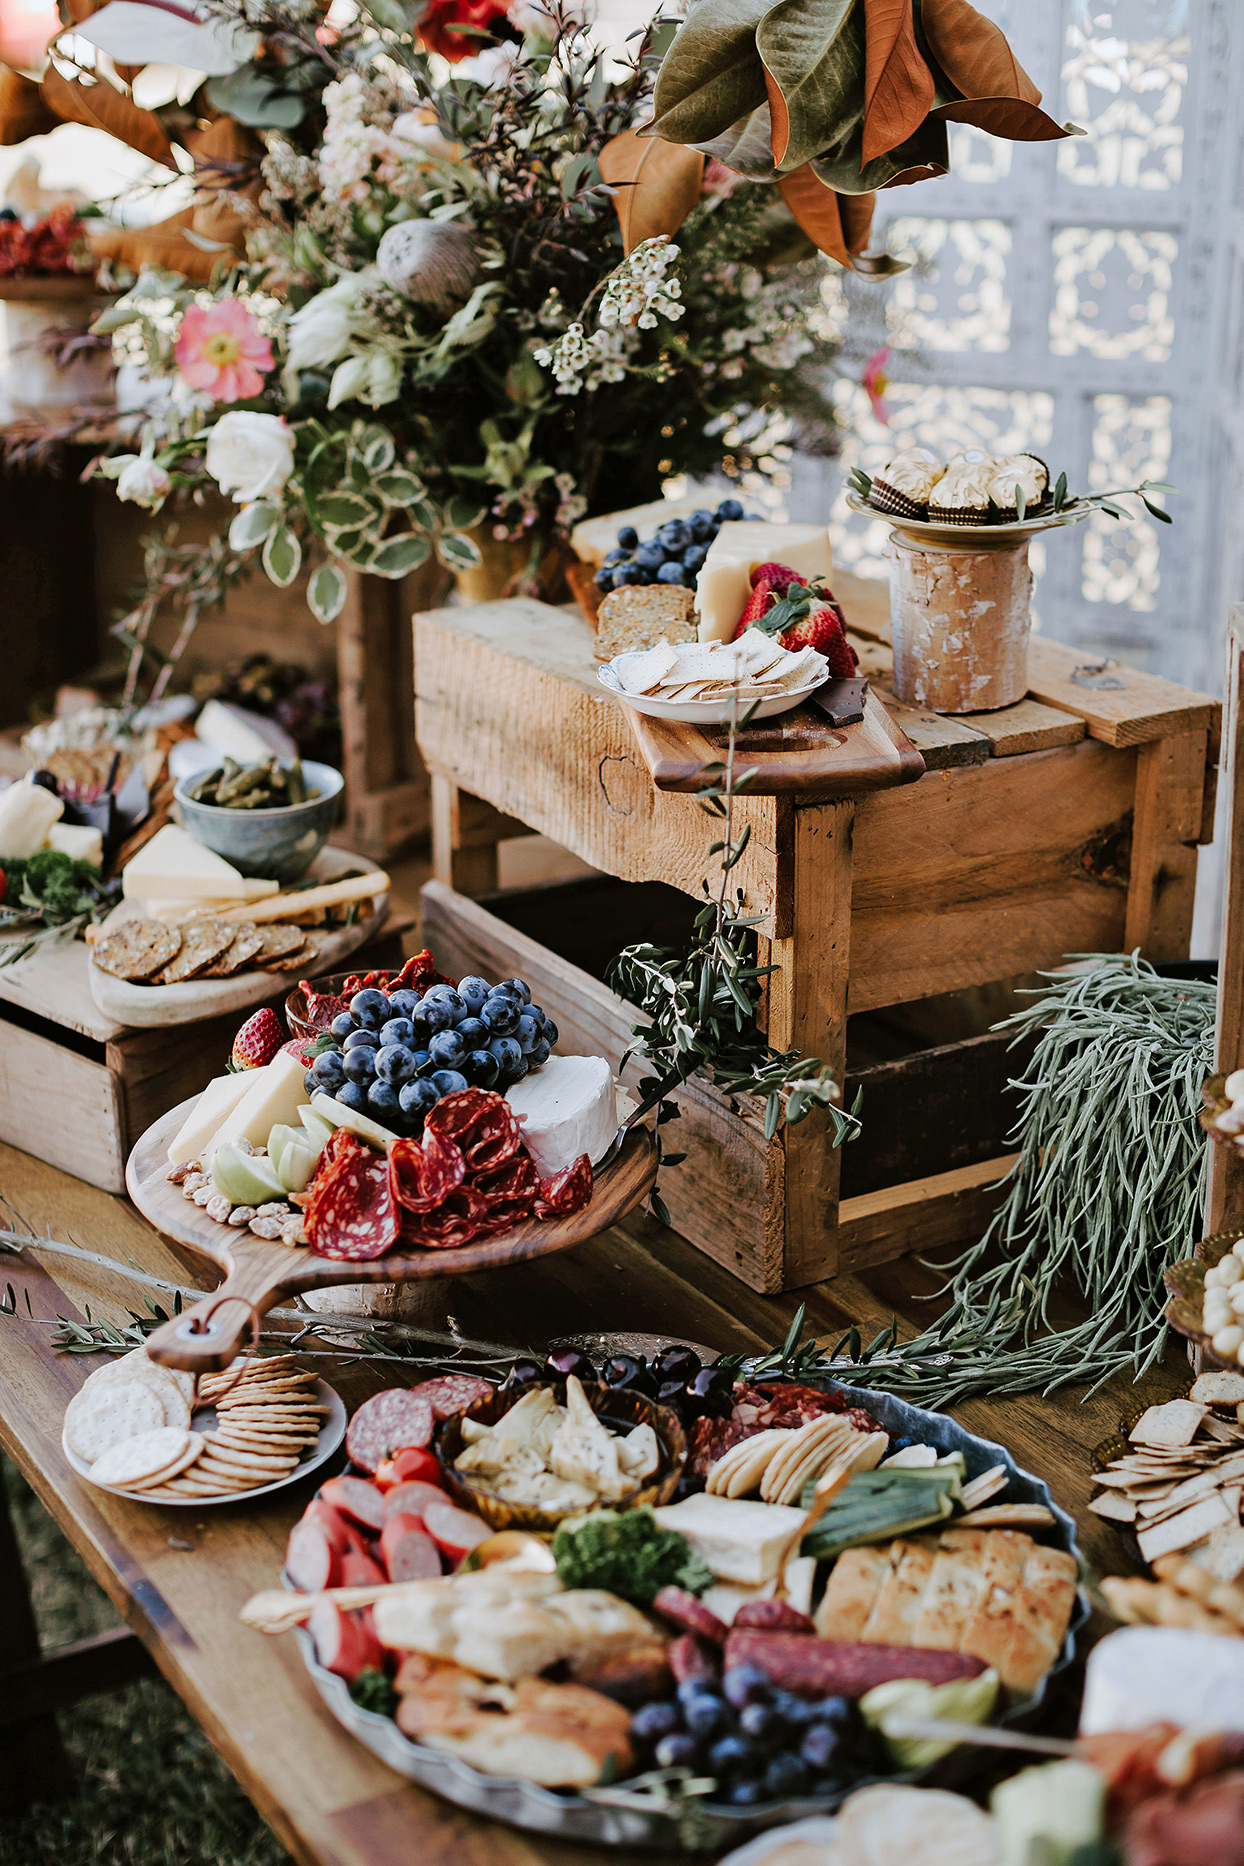 wedding grazing table with wooden risers and platters of food